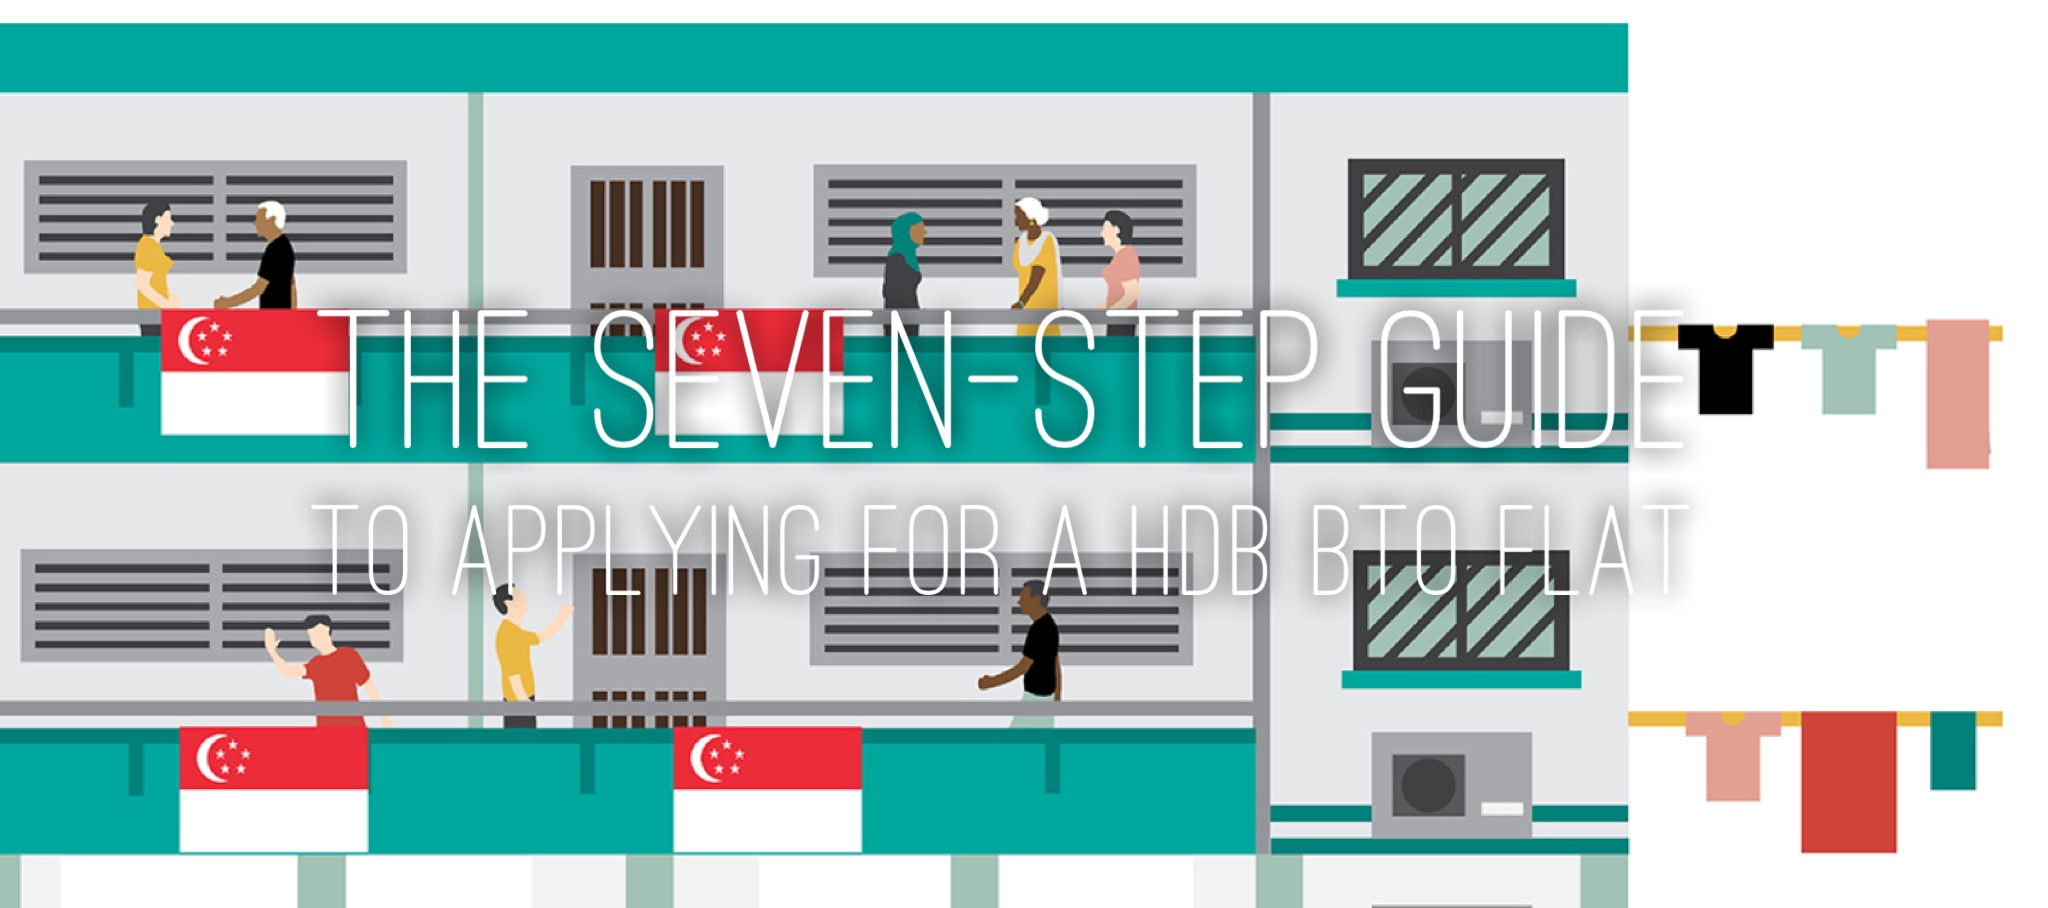 The Seven-Step Guide To Applying For A HDB BTO Flat